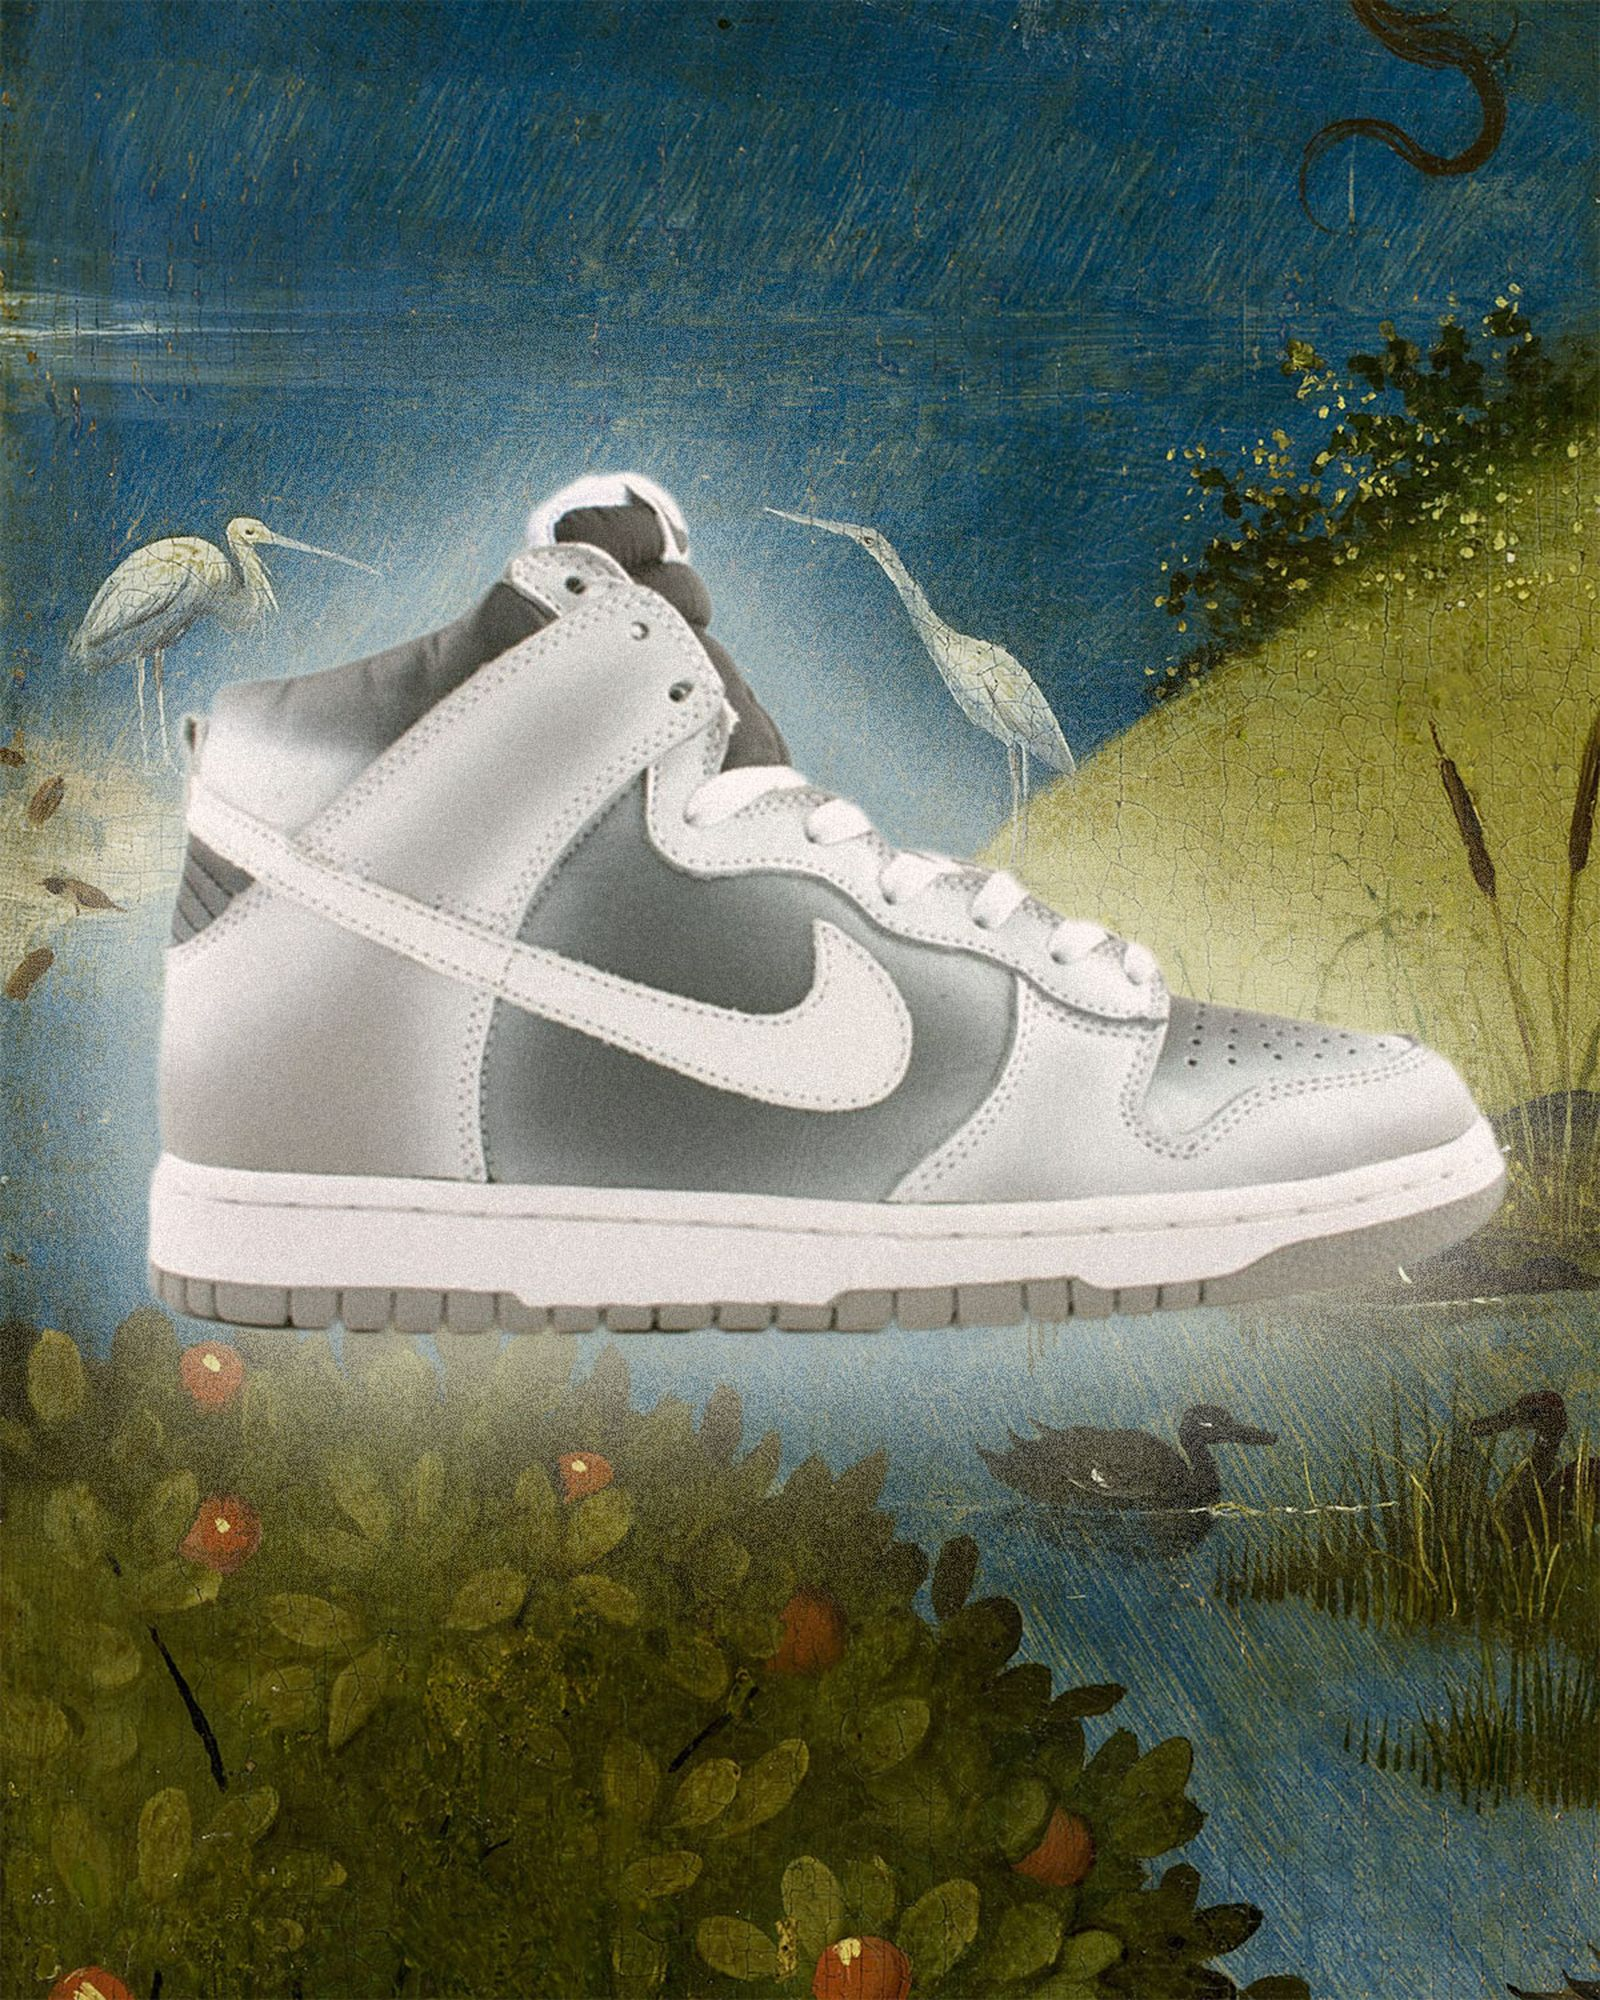 Nike-Dunk-High-Haze